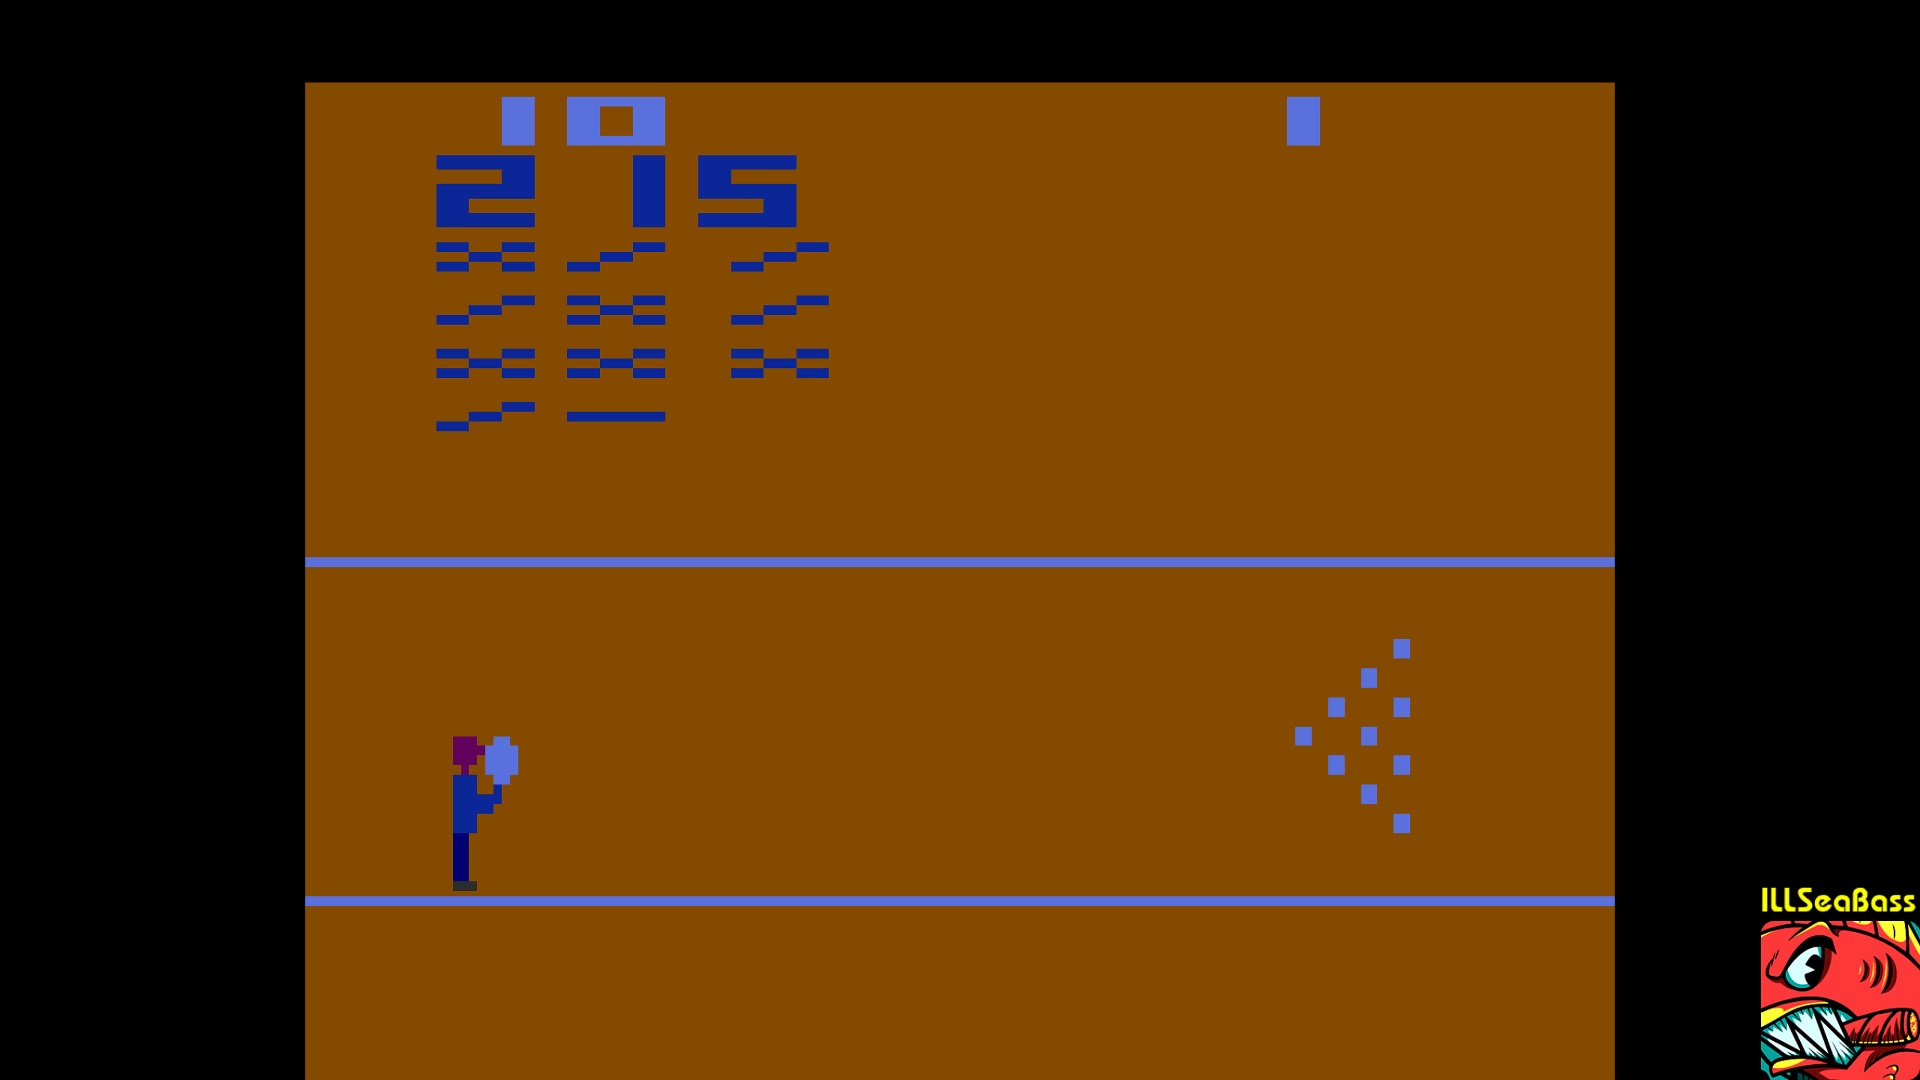 ILLSeaBass: Bowling (Atari 2600 Emulated Novice/B Mode) 215 points on 2018-01-08 00:13:00